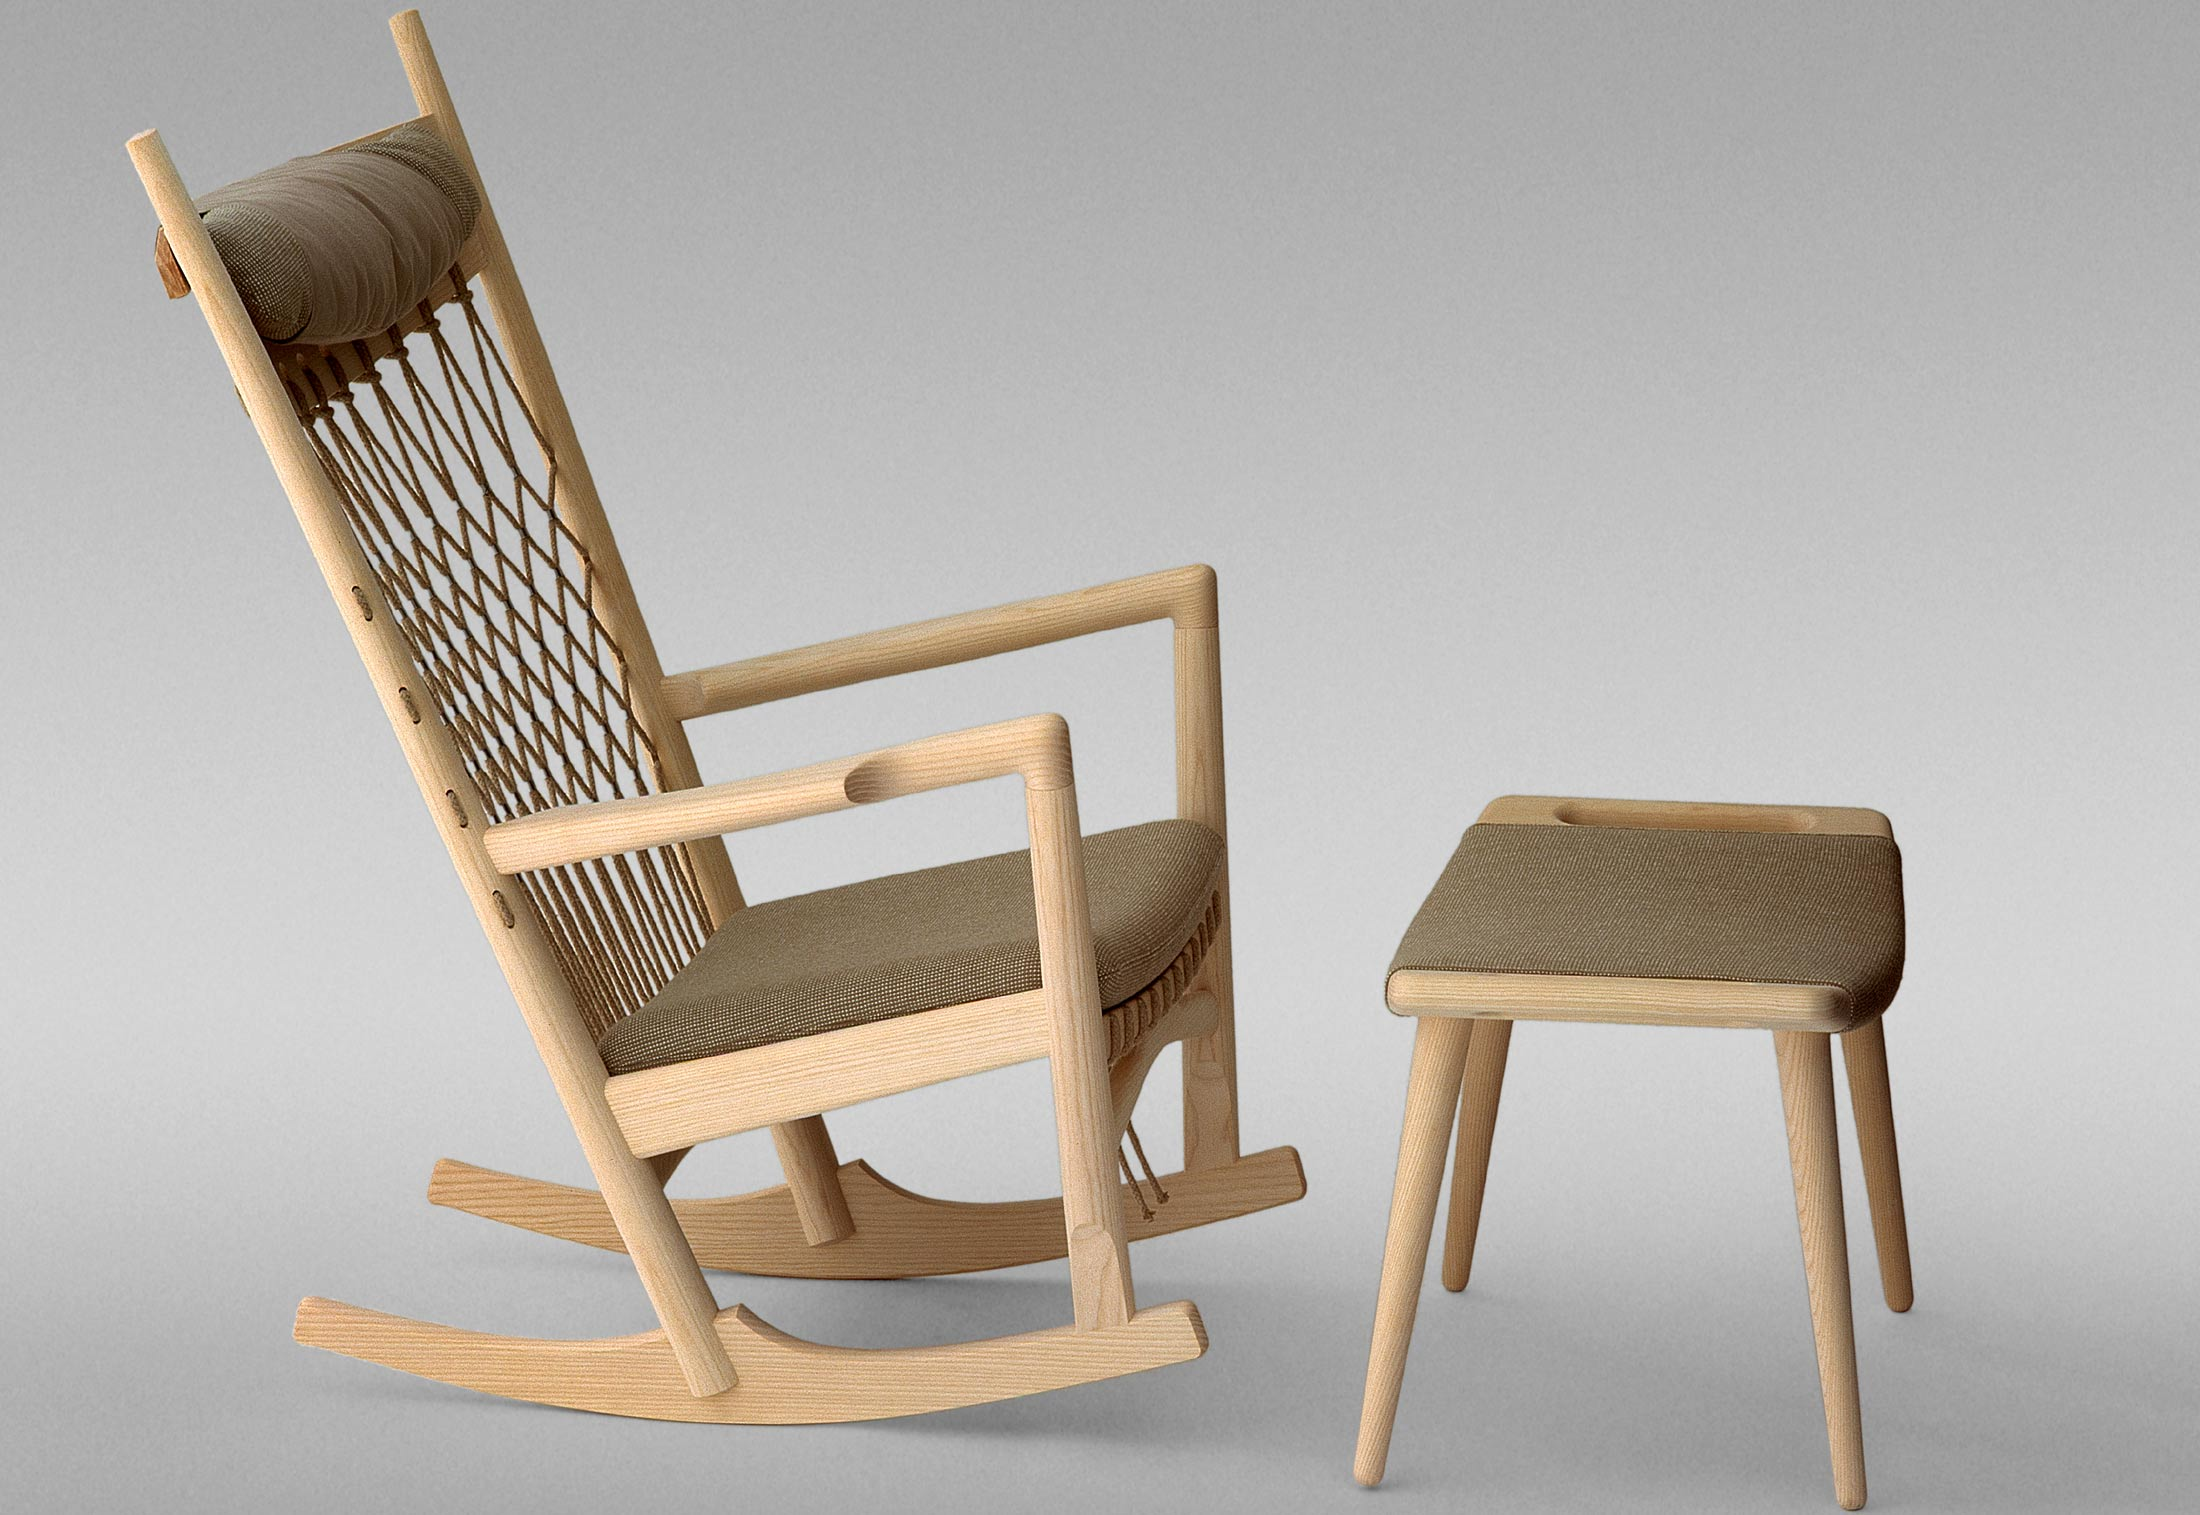 Shaker Schaukelstuhl Pp 124 The Rocking Chair Von Pp Møbler Stylepark